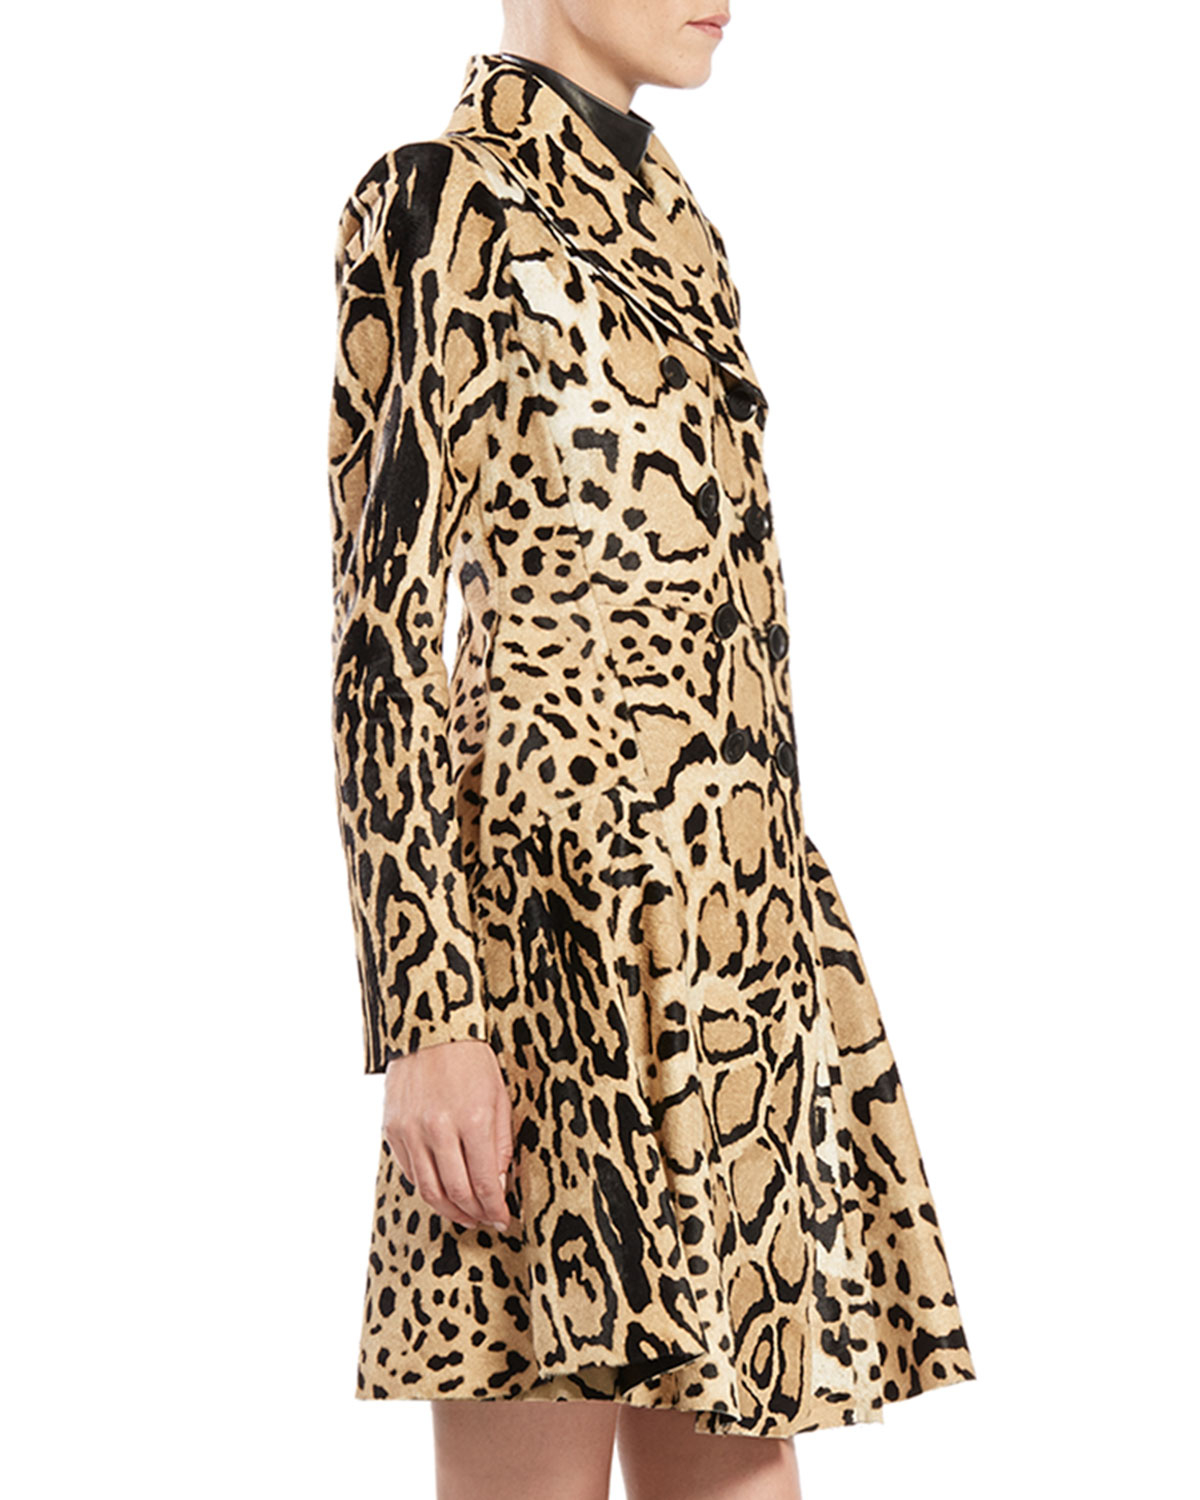 c97efce7172c Gucci Leopard Print Double-breasted Wool Coat - Lyst